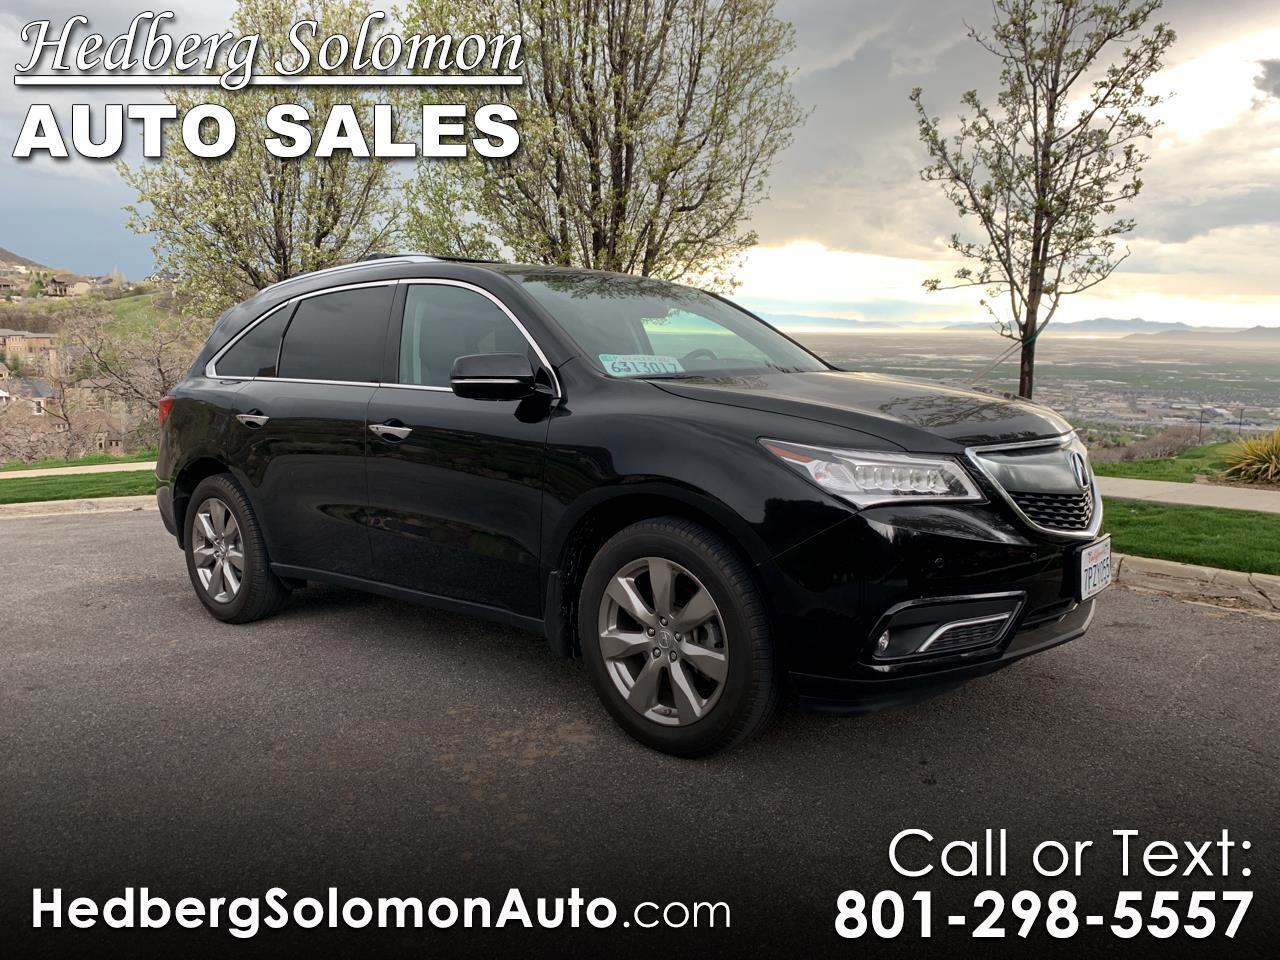 2016 Acura MDX SH-AWD 4dr w/Advance